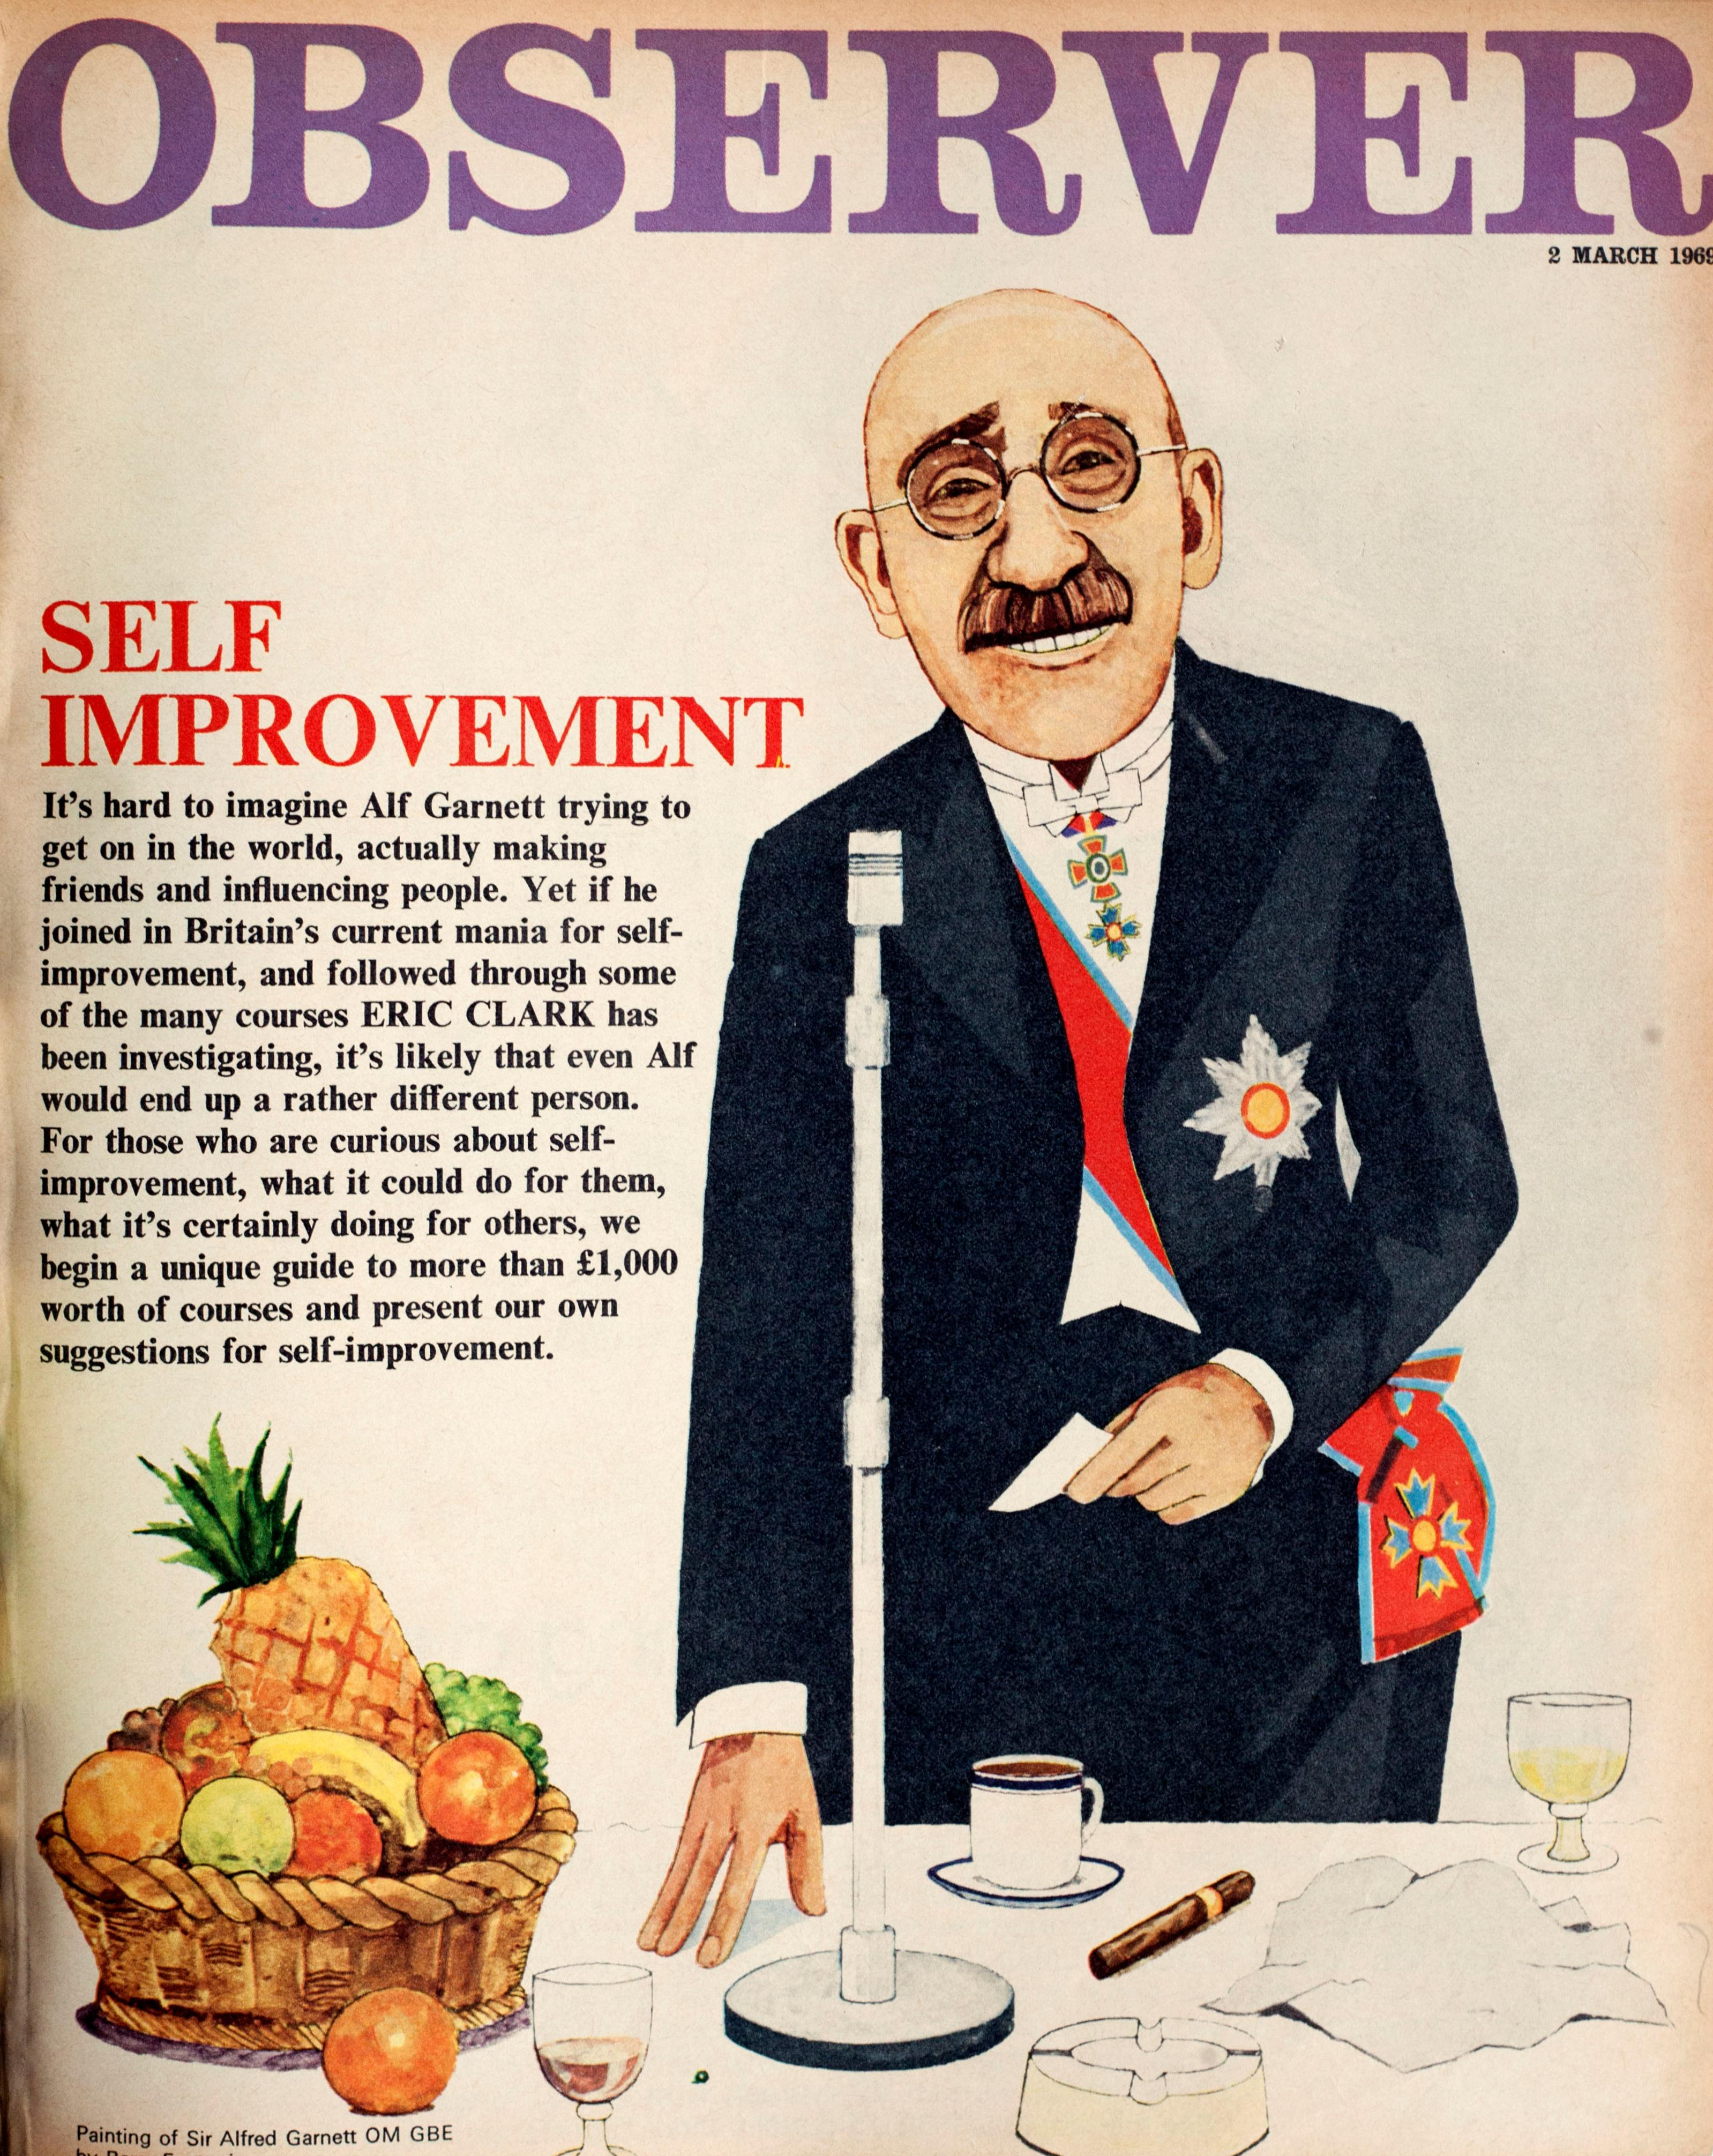 From the archive: Alf Garnett offers tips on self-improvement